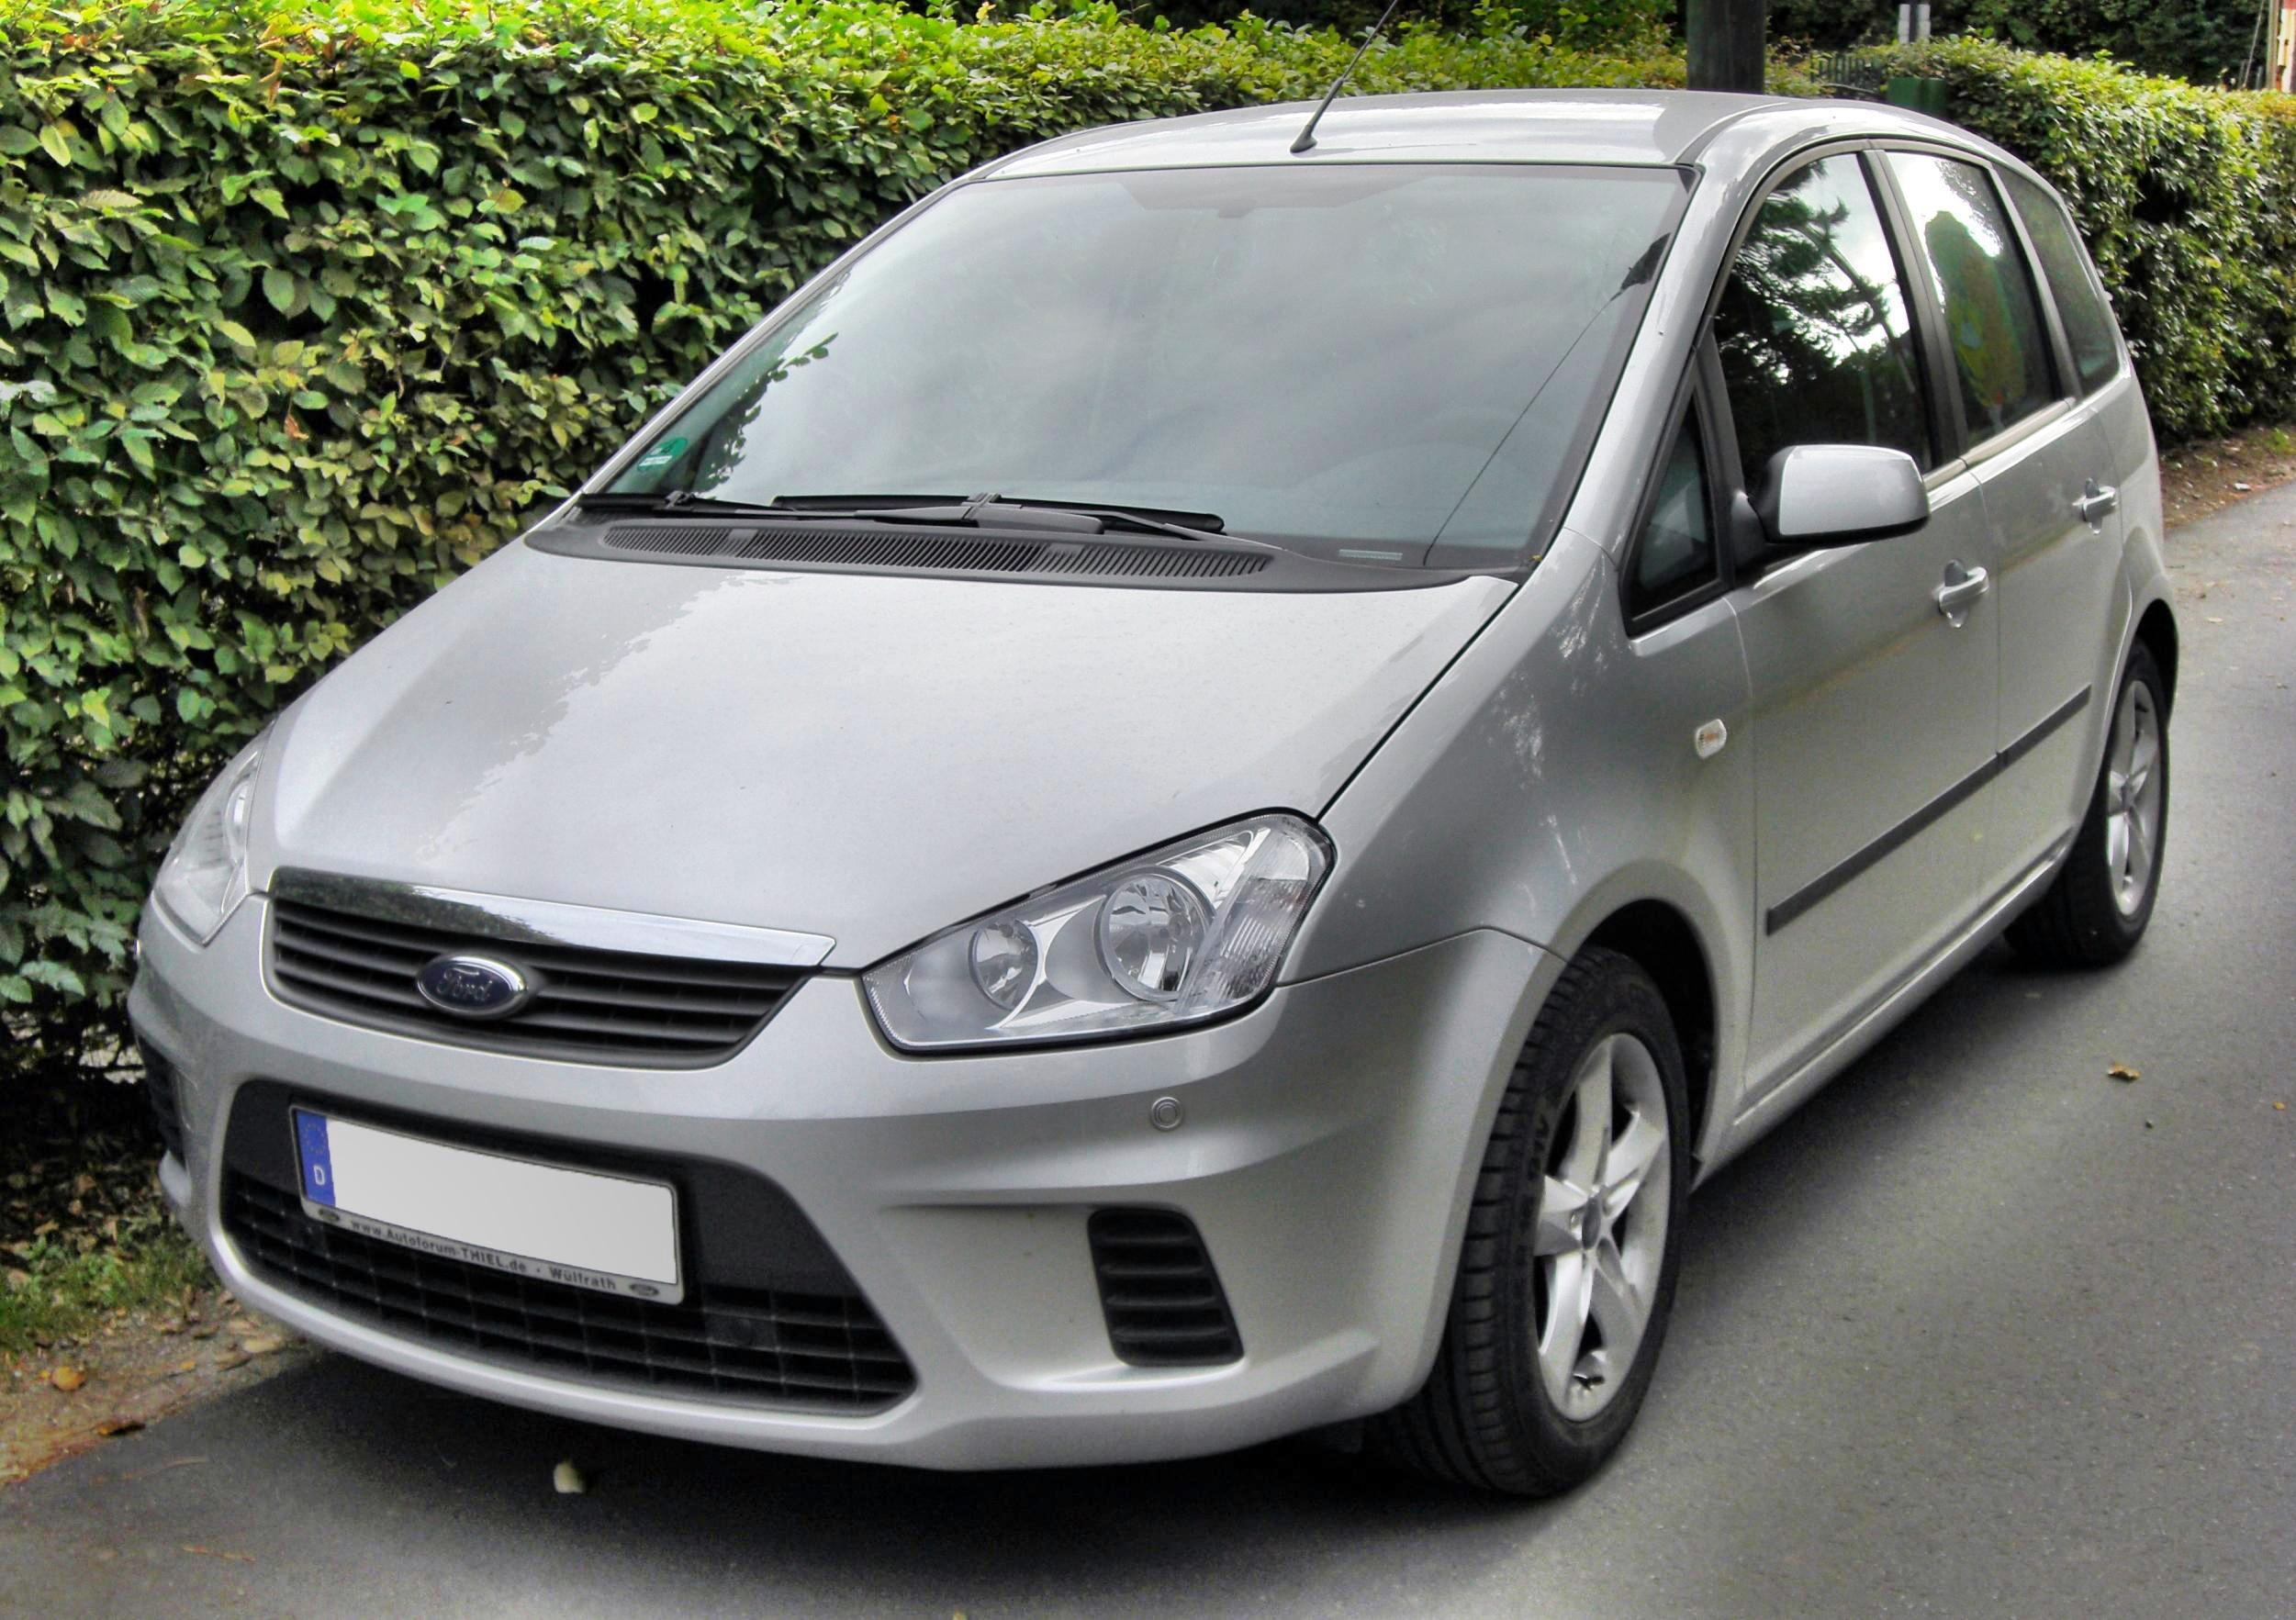 Dimension Grand C Max Dimensions Ford C Max 2009